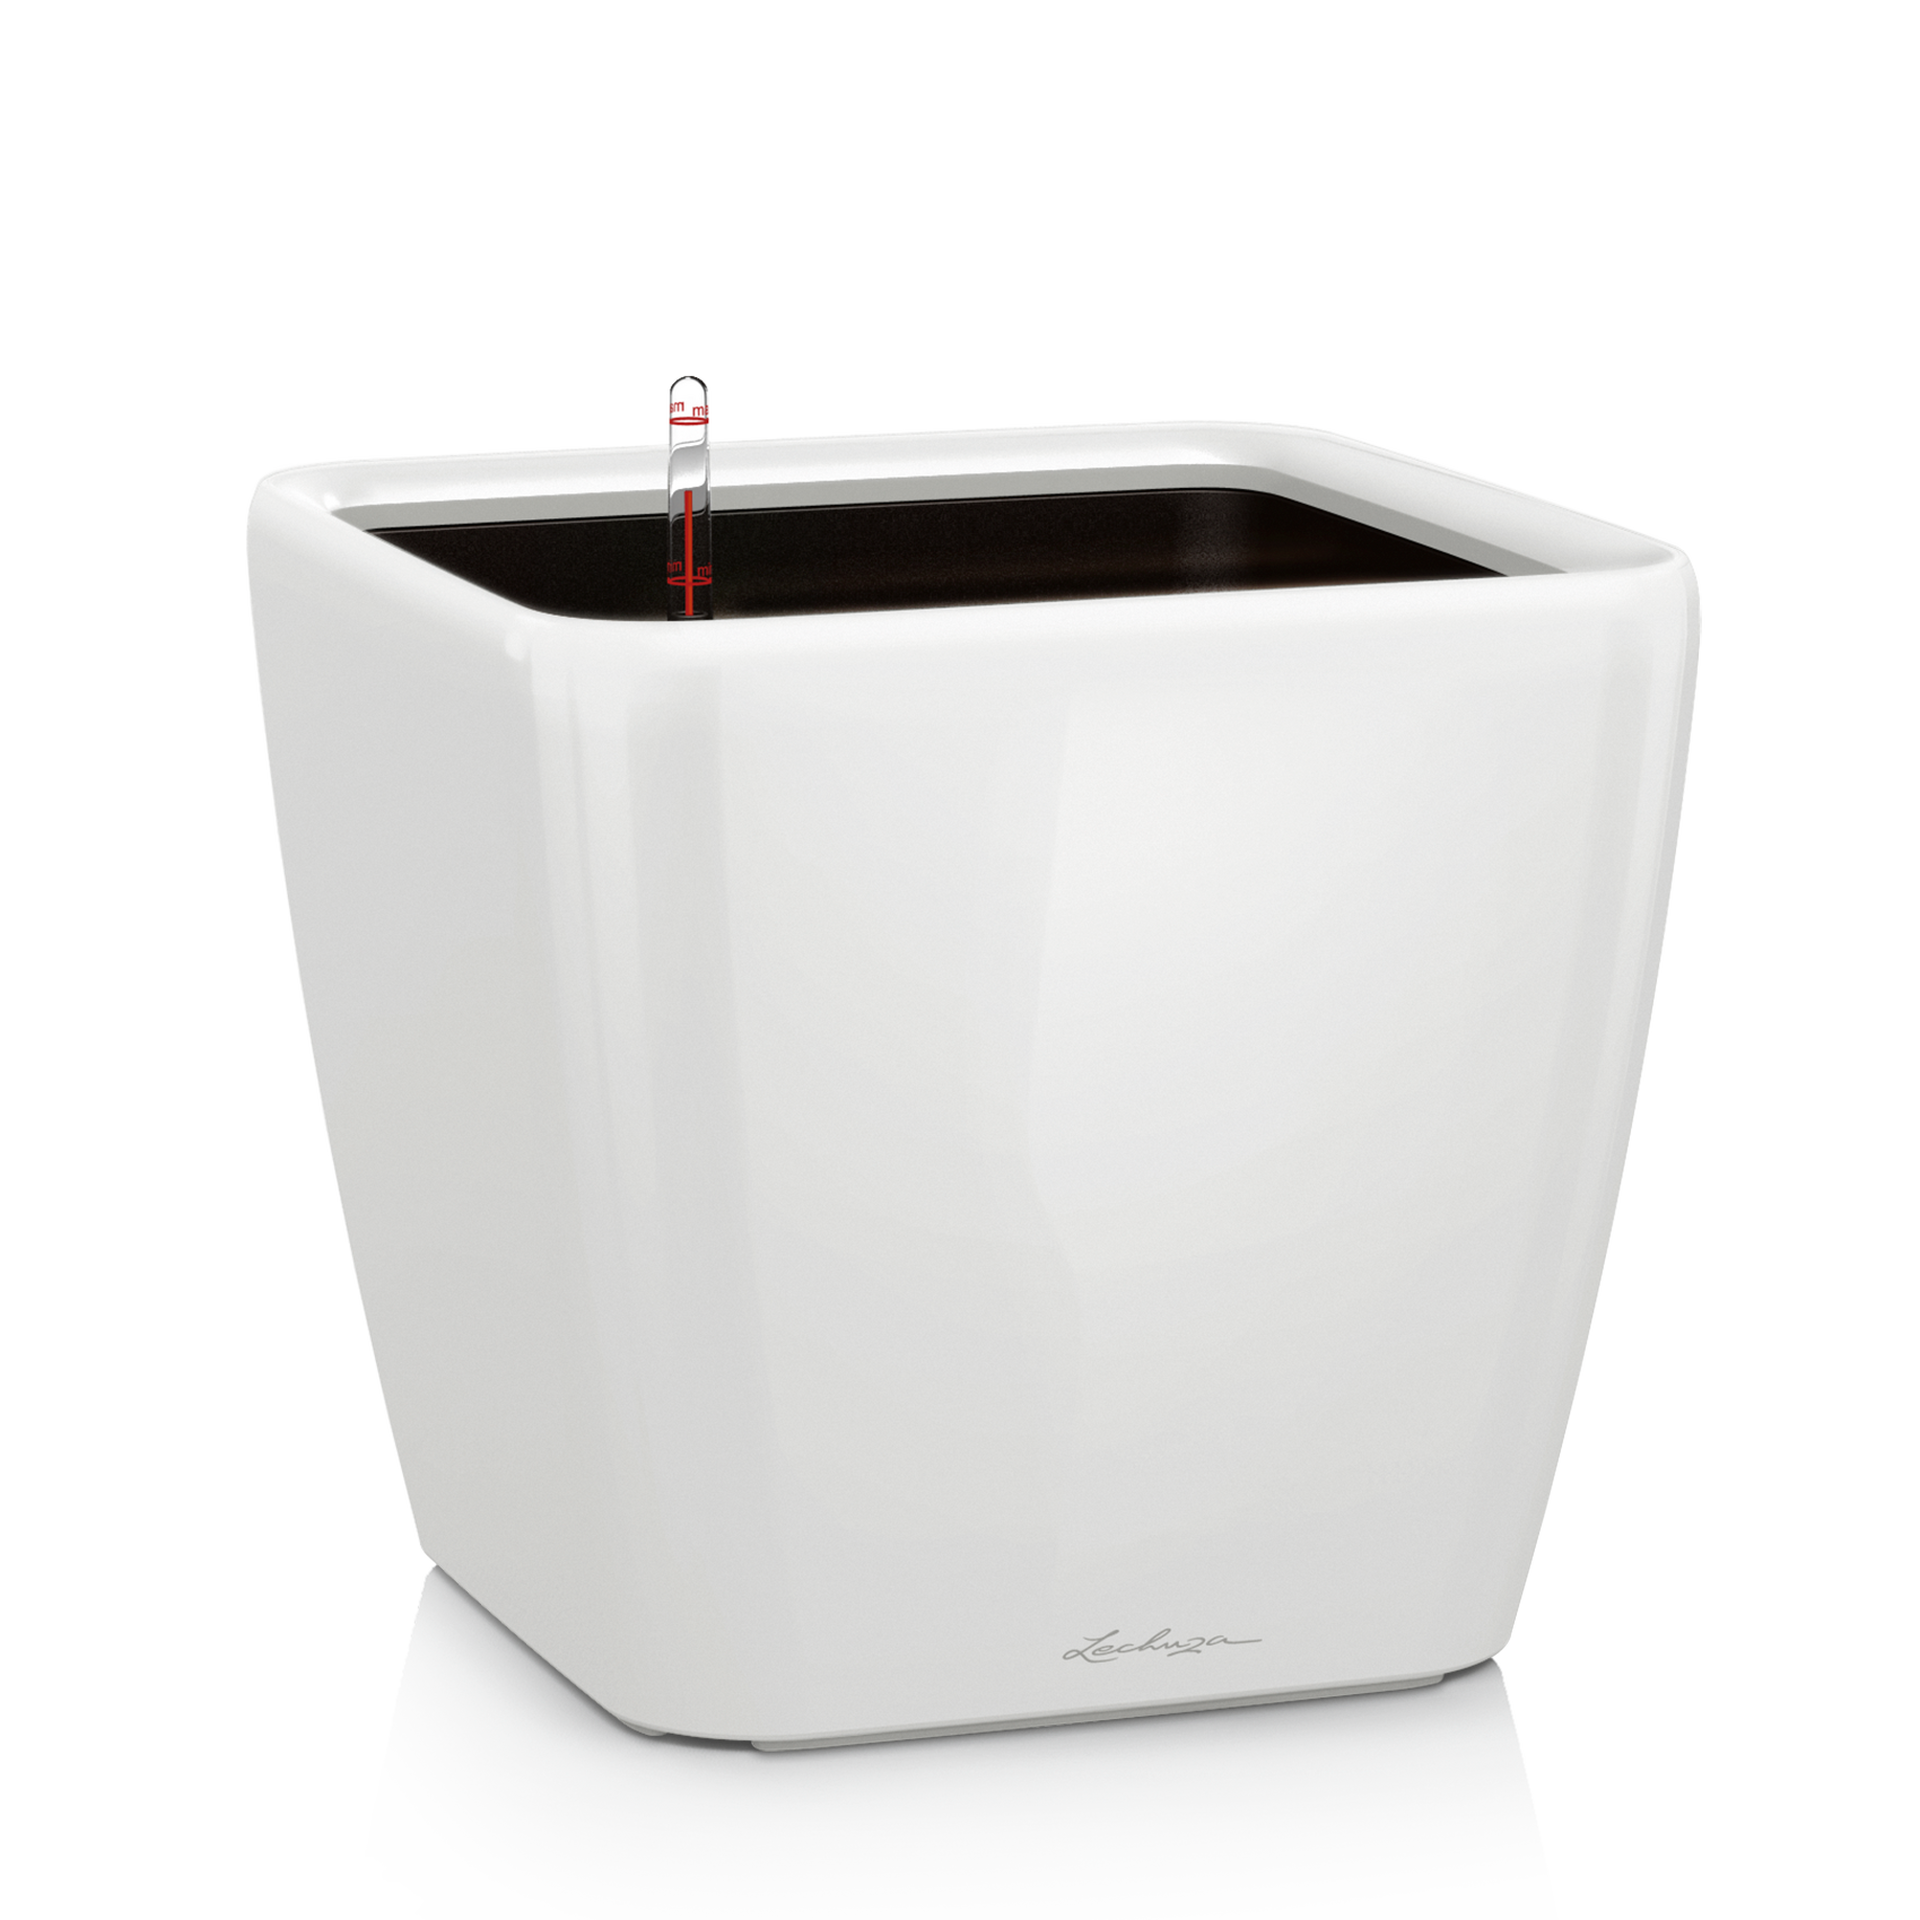 QUADRO LS 21 white high-gloss